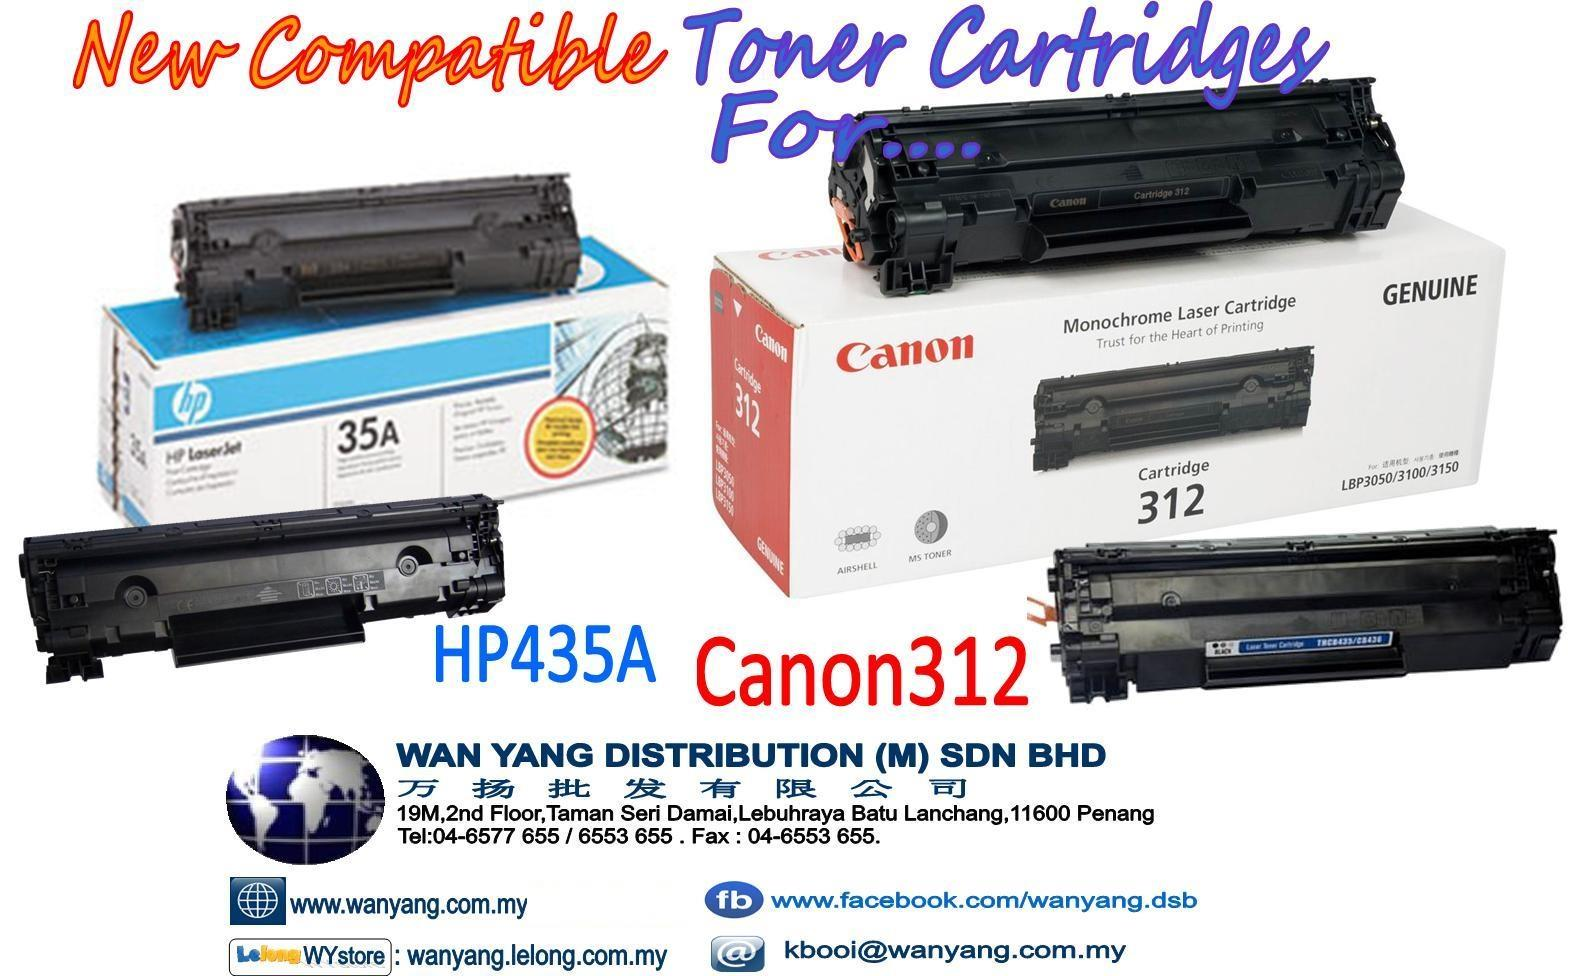 HP435 / Canon 312 Compatible Toner cartridges